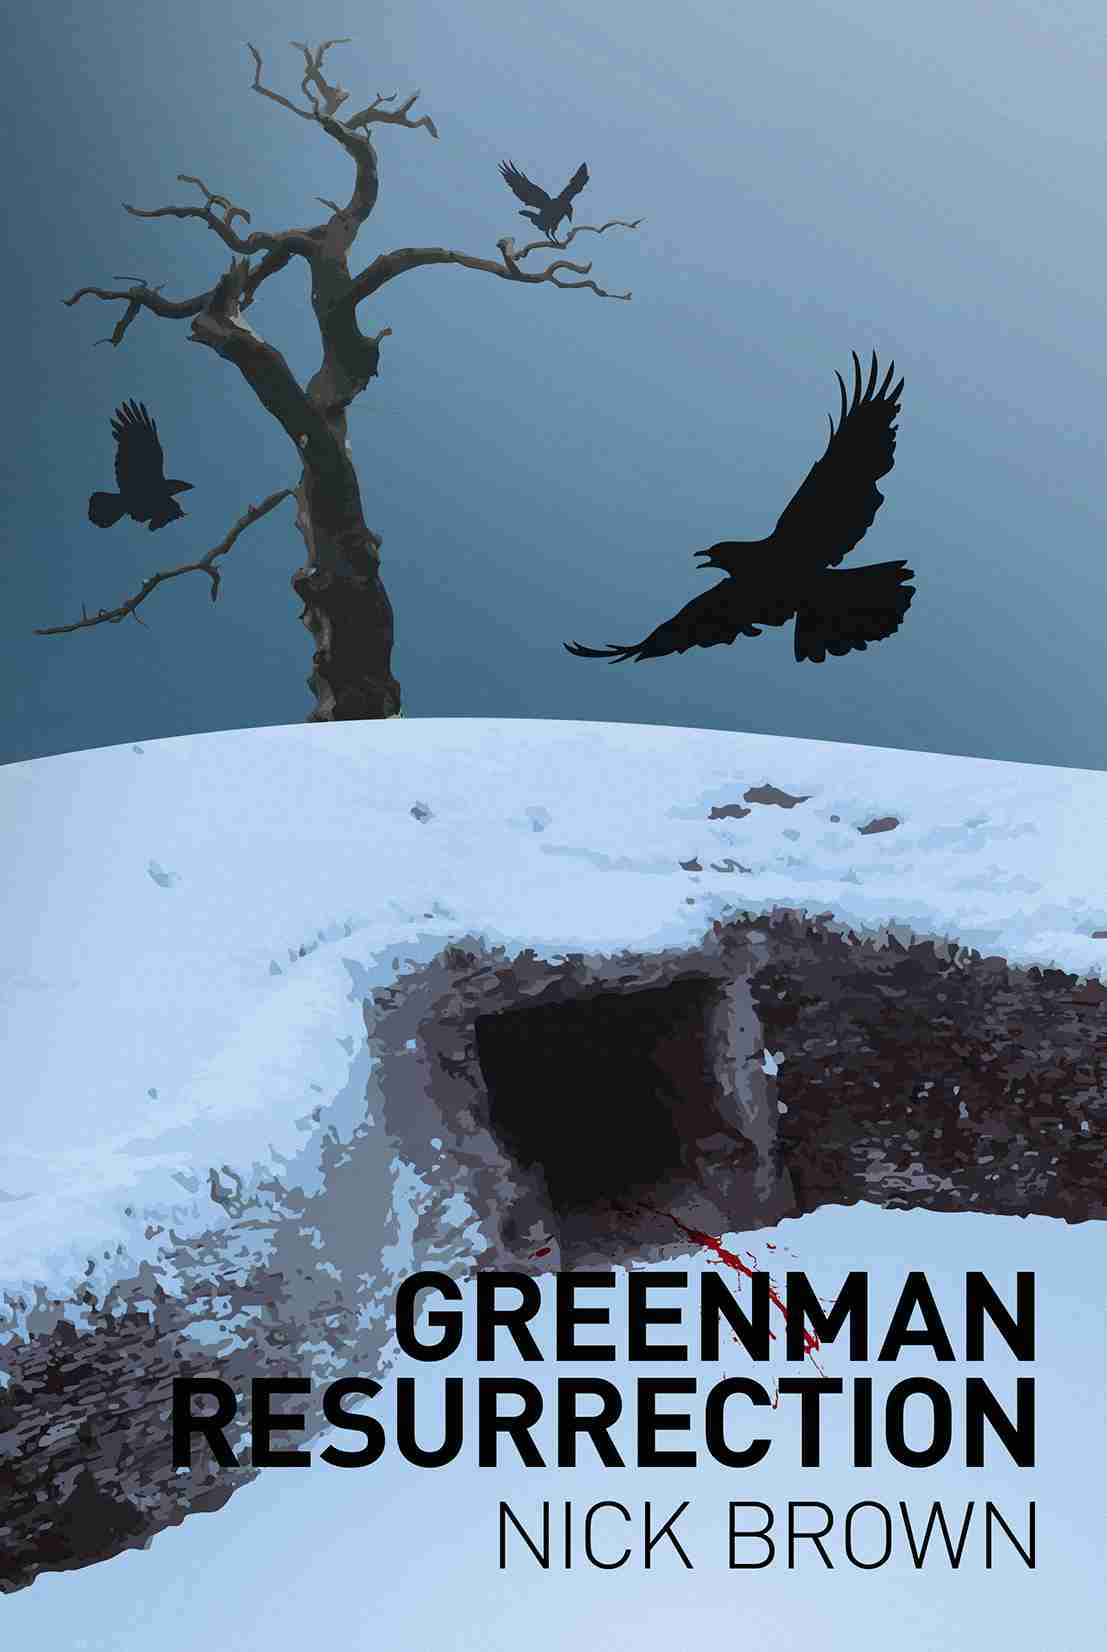 Greenman Resurrection by Nick Brown